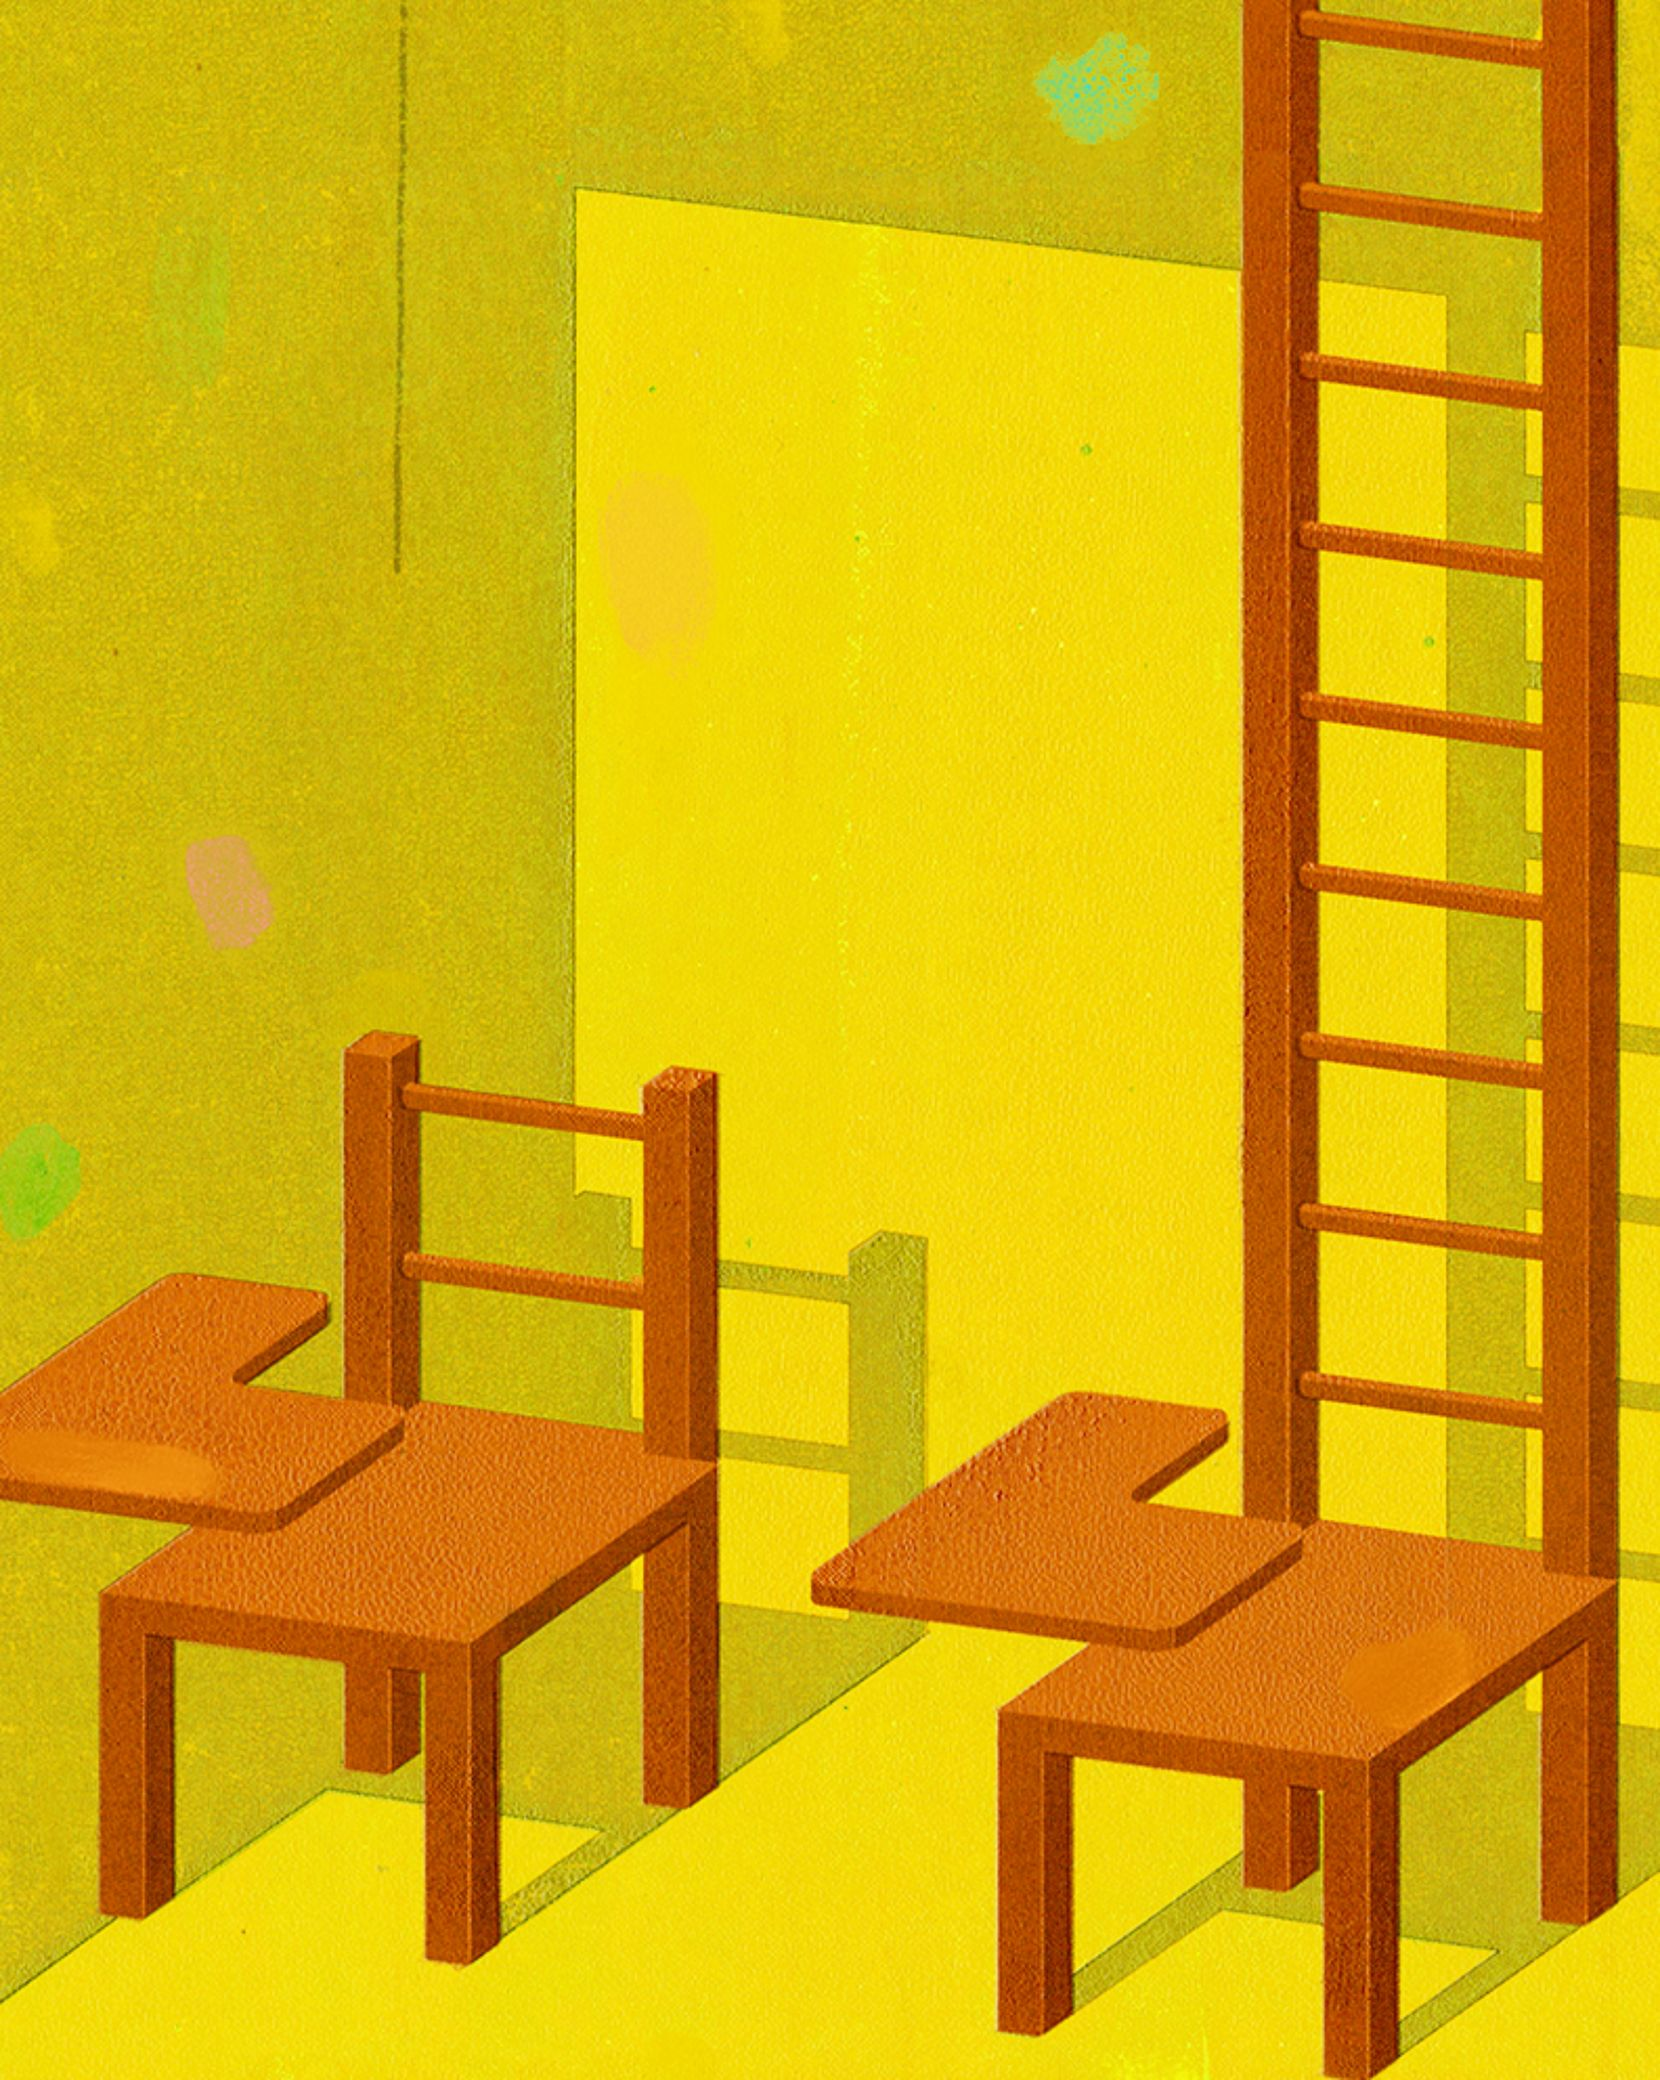 Picture contrasting a normal school desk with a desk that has a ladder as the back board. Illustrating the ladder of succes in education.